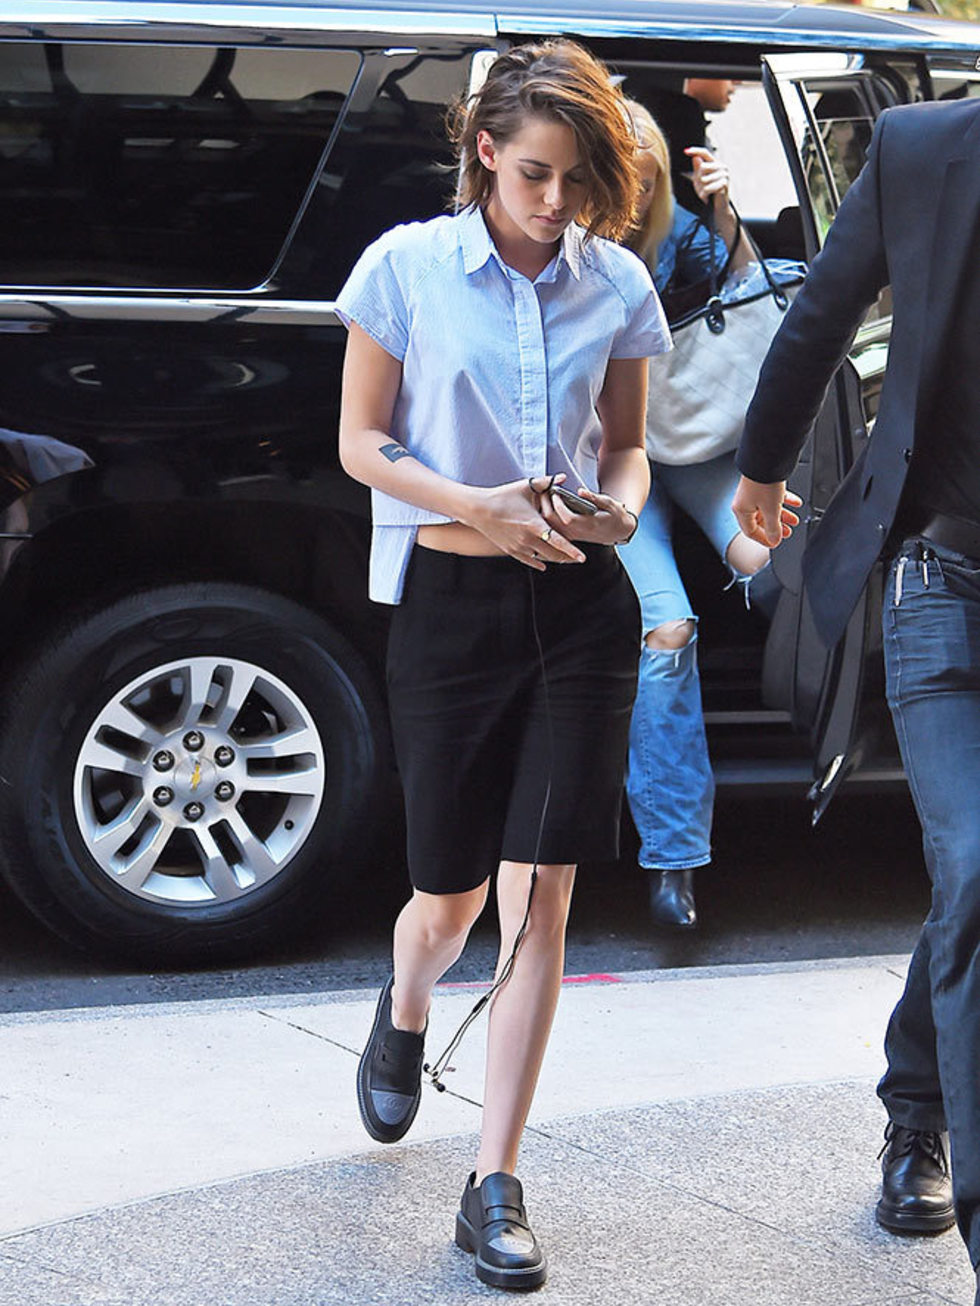 kristen stewart style file: over 90 of her best fashion and style moments|  fashion VKNVIQY